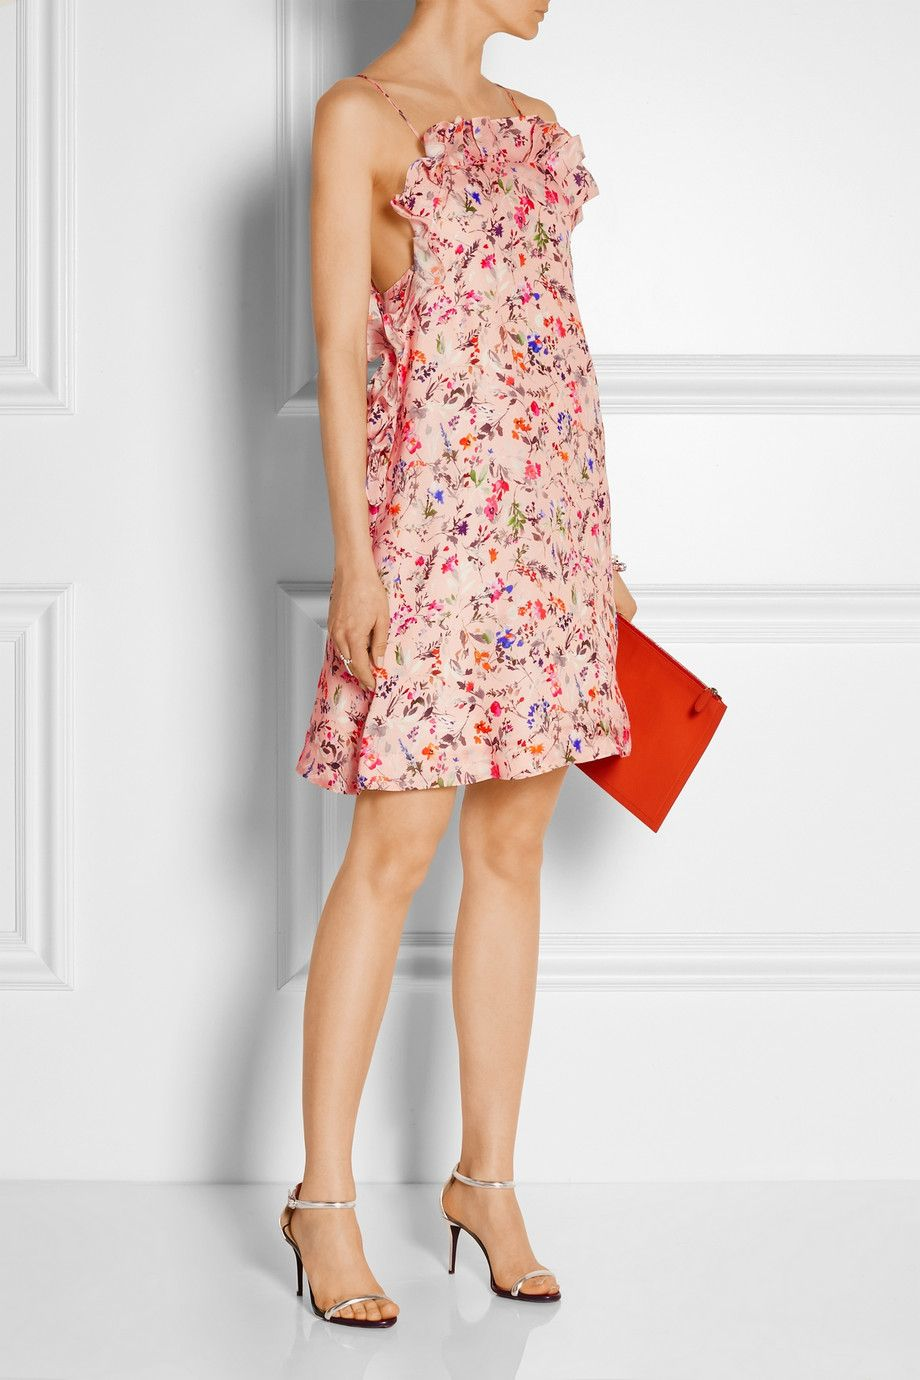 MSGM Floral-print woven silk mini dress | Outfits I like or just ...